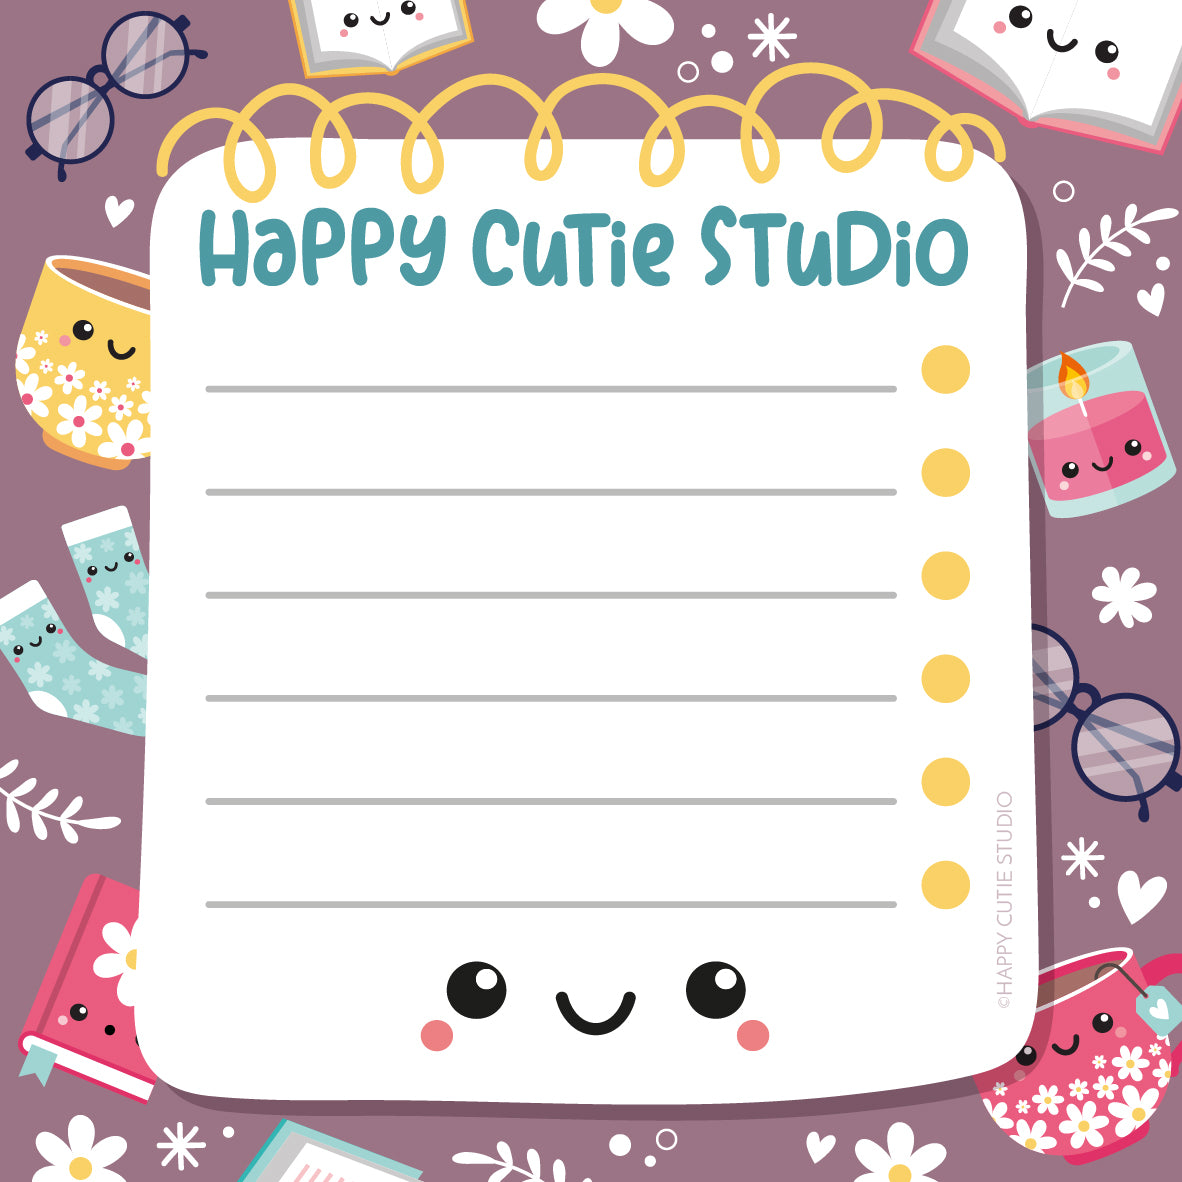 A cute doodle of a lined notepad with kawaii icons of teacups, books, and glasses dotted around the edge